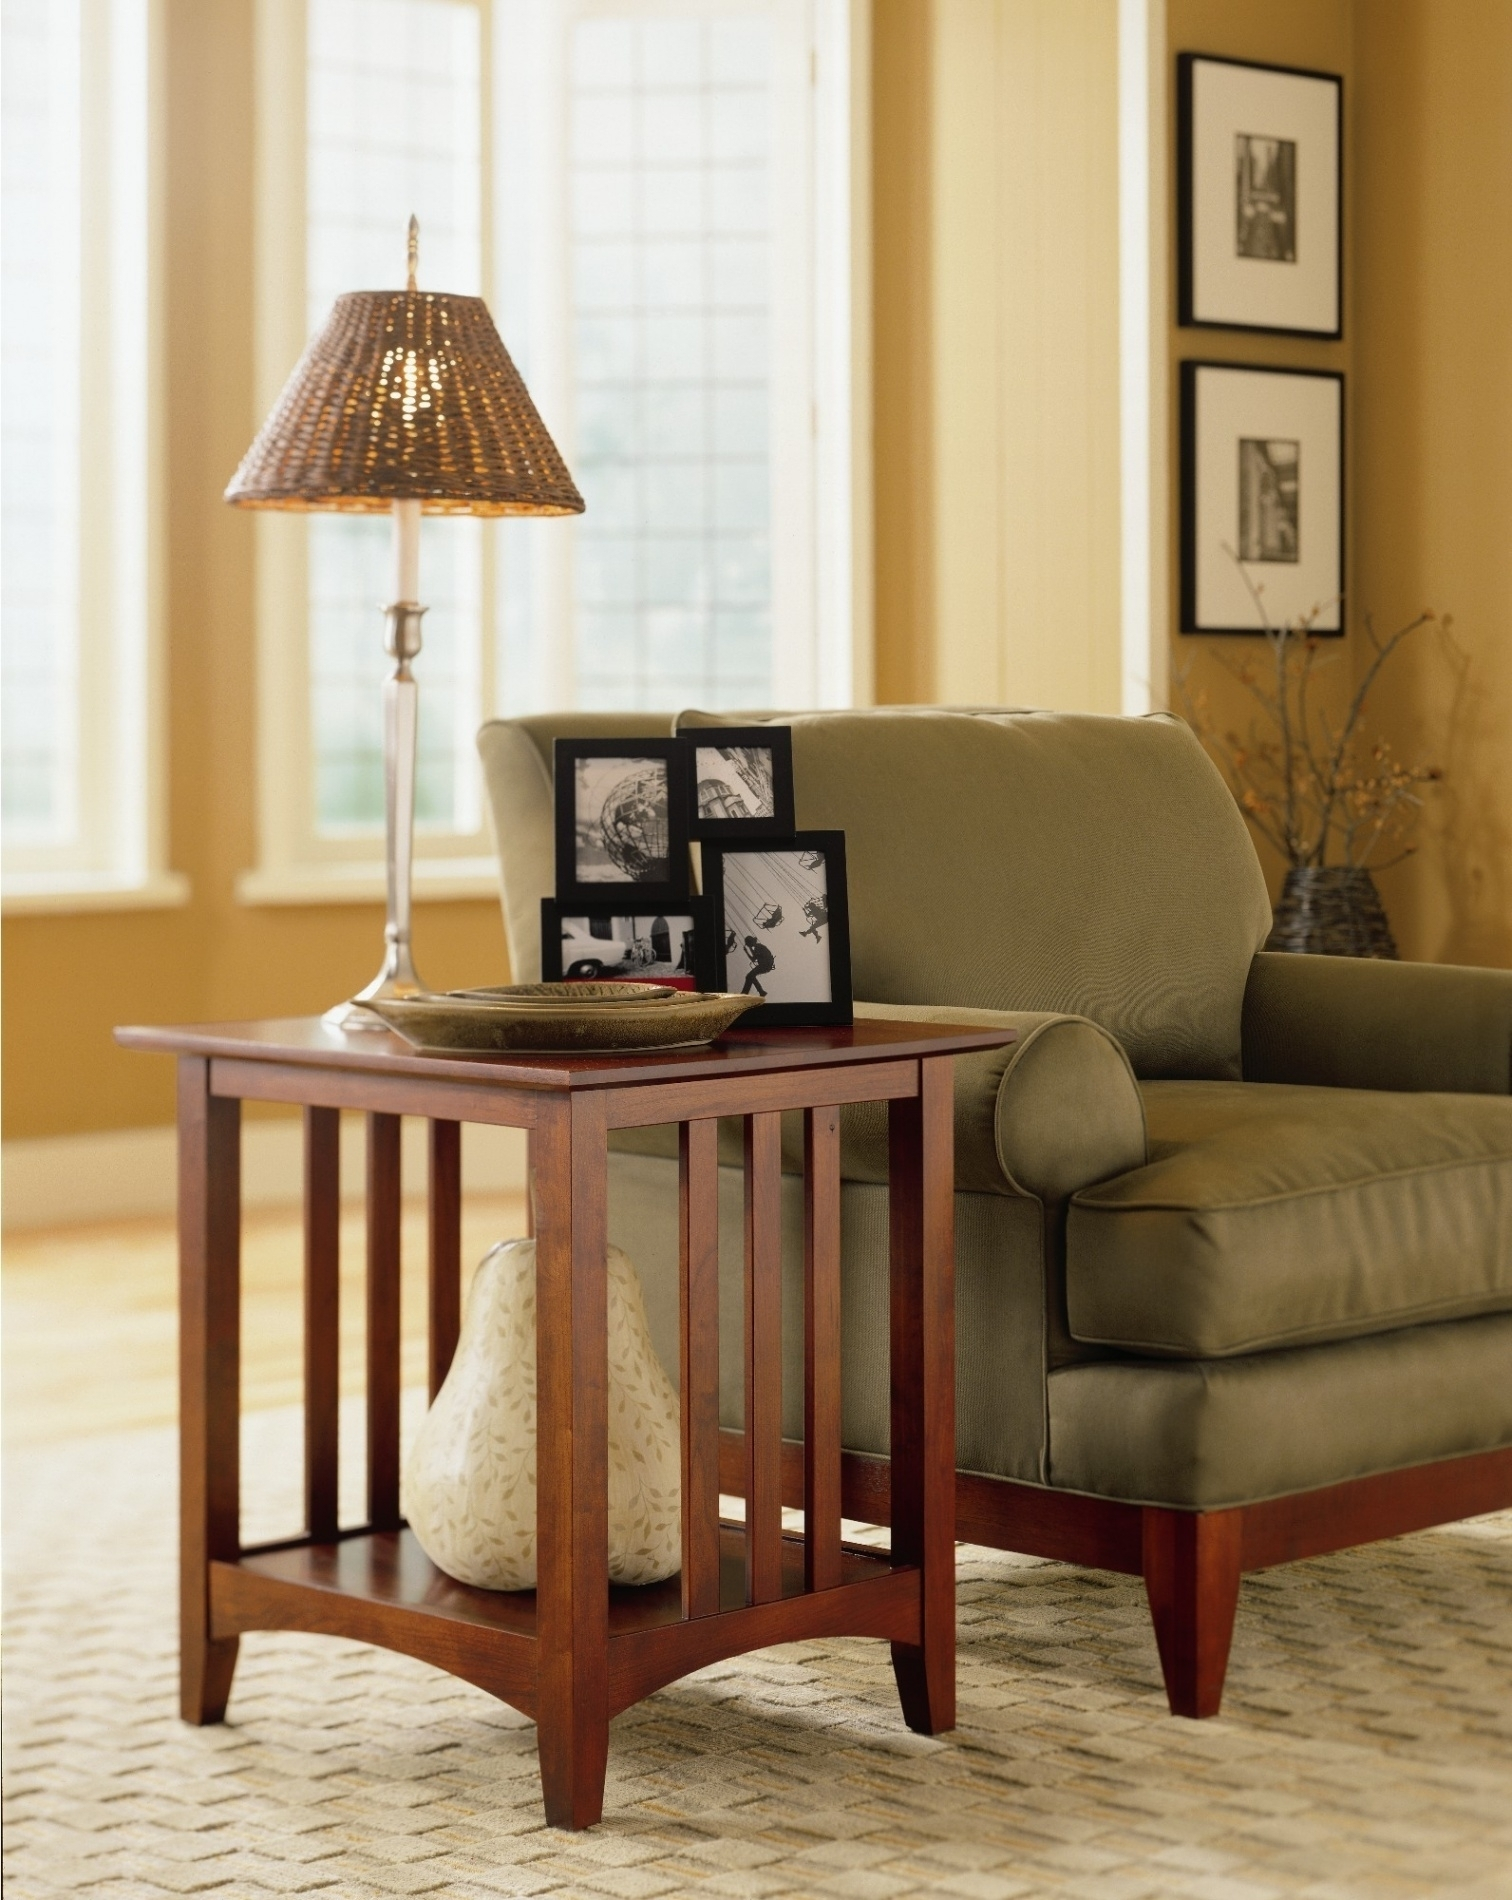 Living Room End Table Lamps For 2017 End Table Lamps For Living Room Home Combo, Living Room End Table (View 4 of 15)